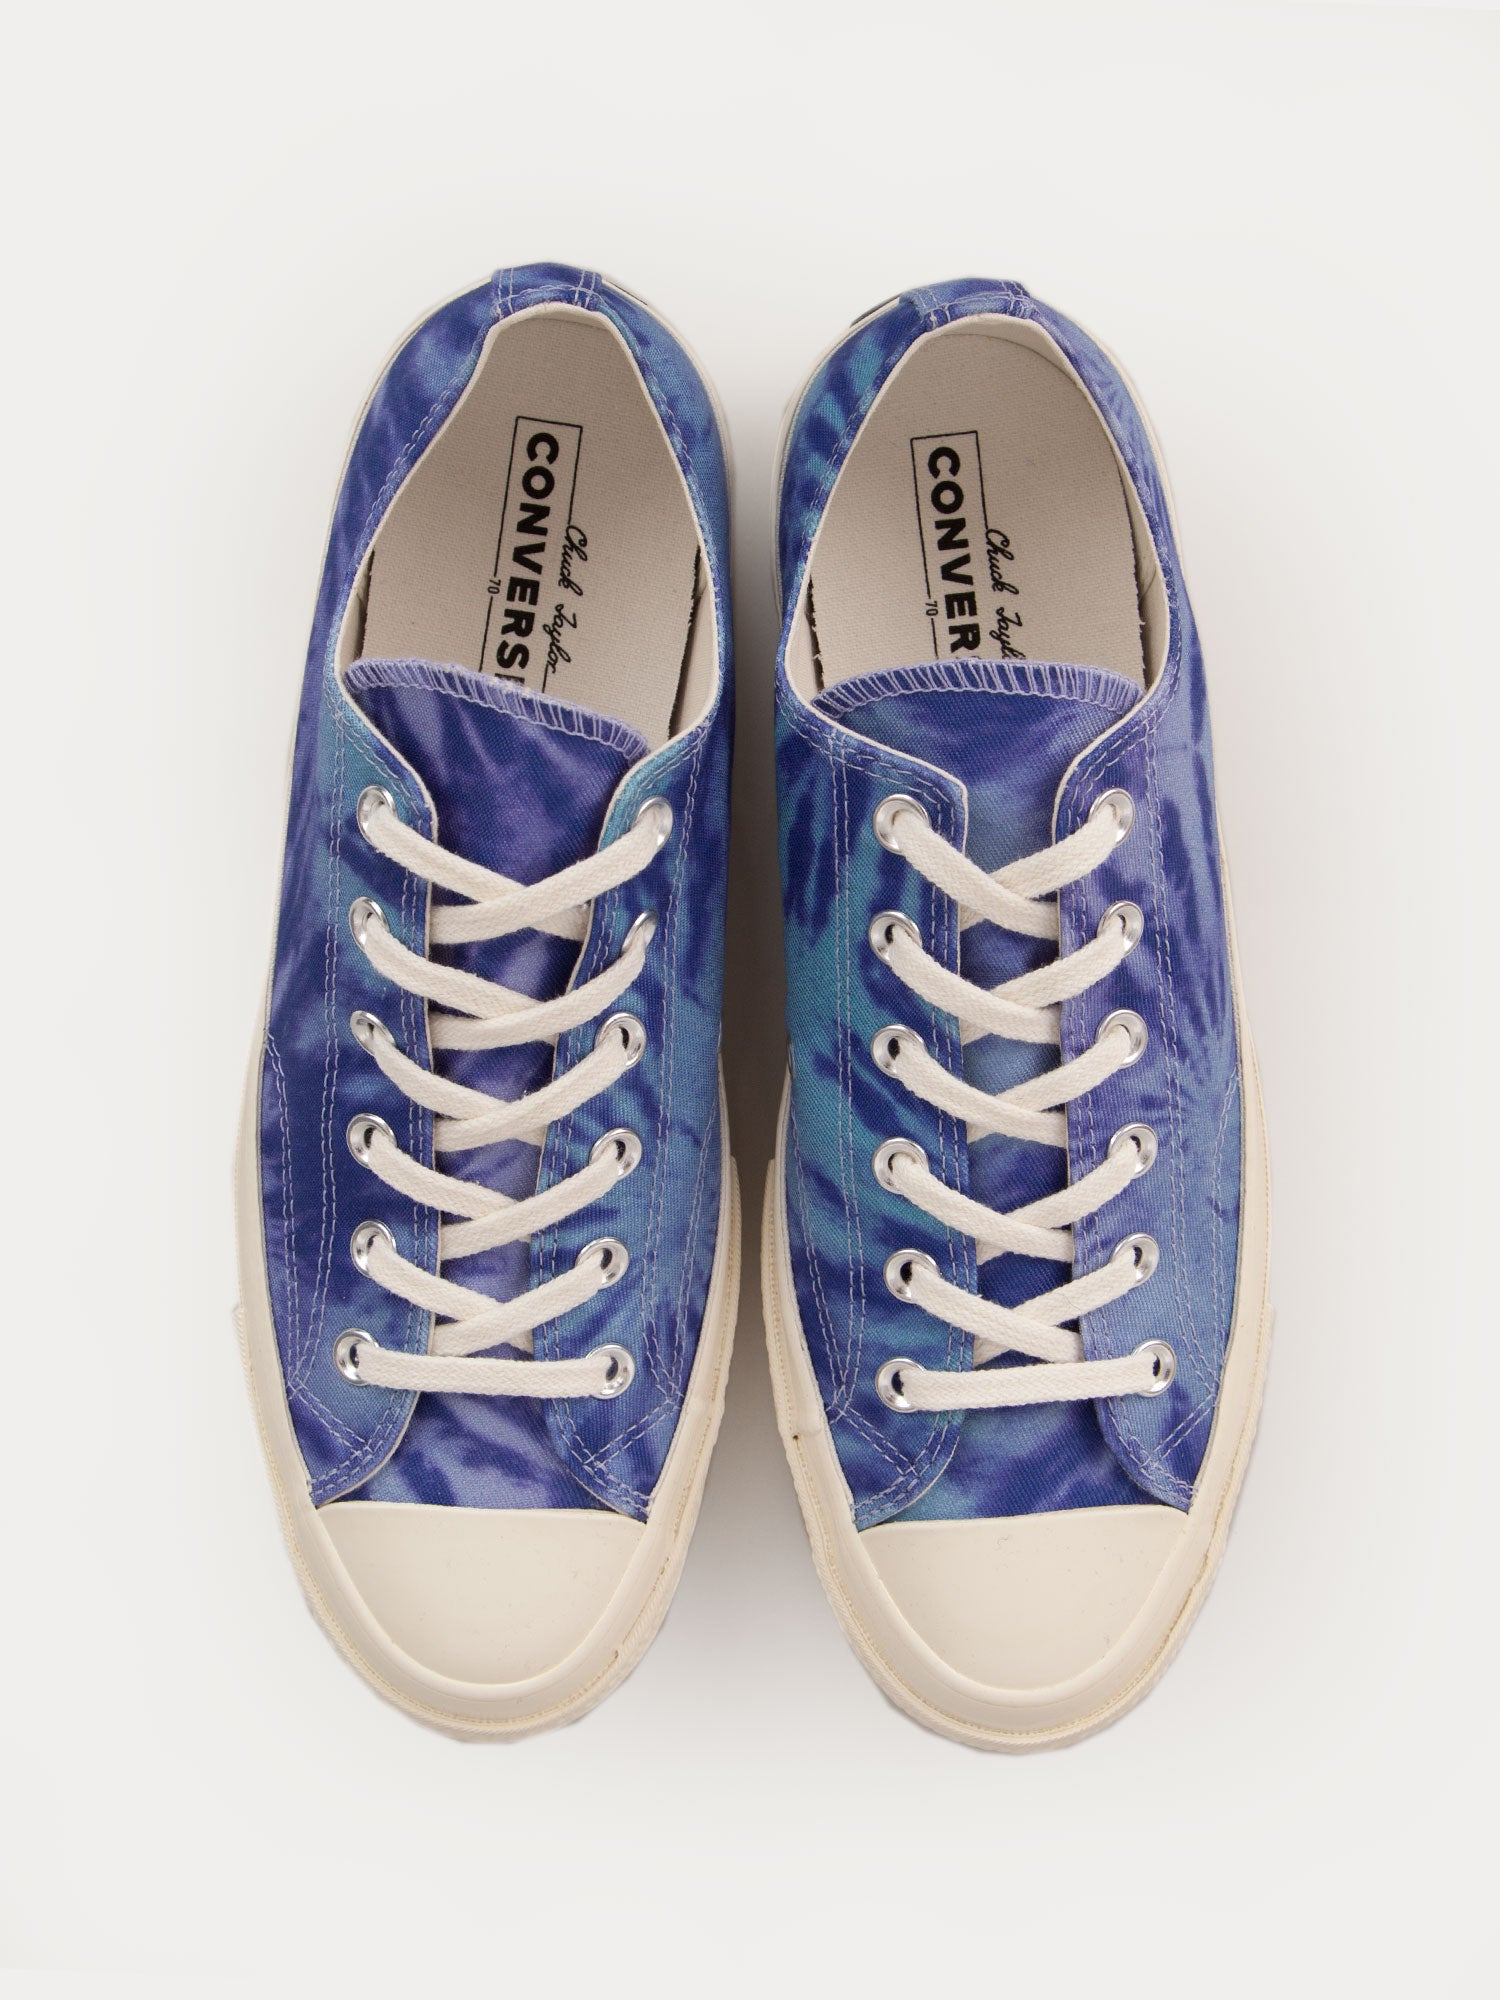 3deda8b8f7f Converse Chuck Taylor All Star 70 Ox (Court Purple   Shoreline Blue)